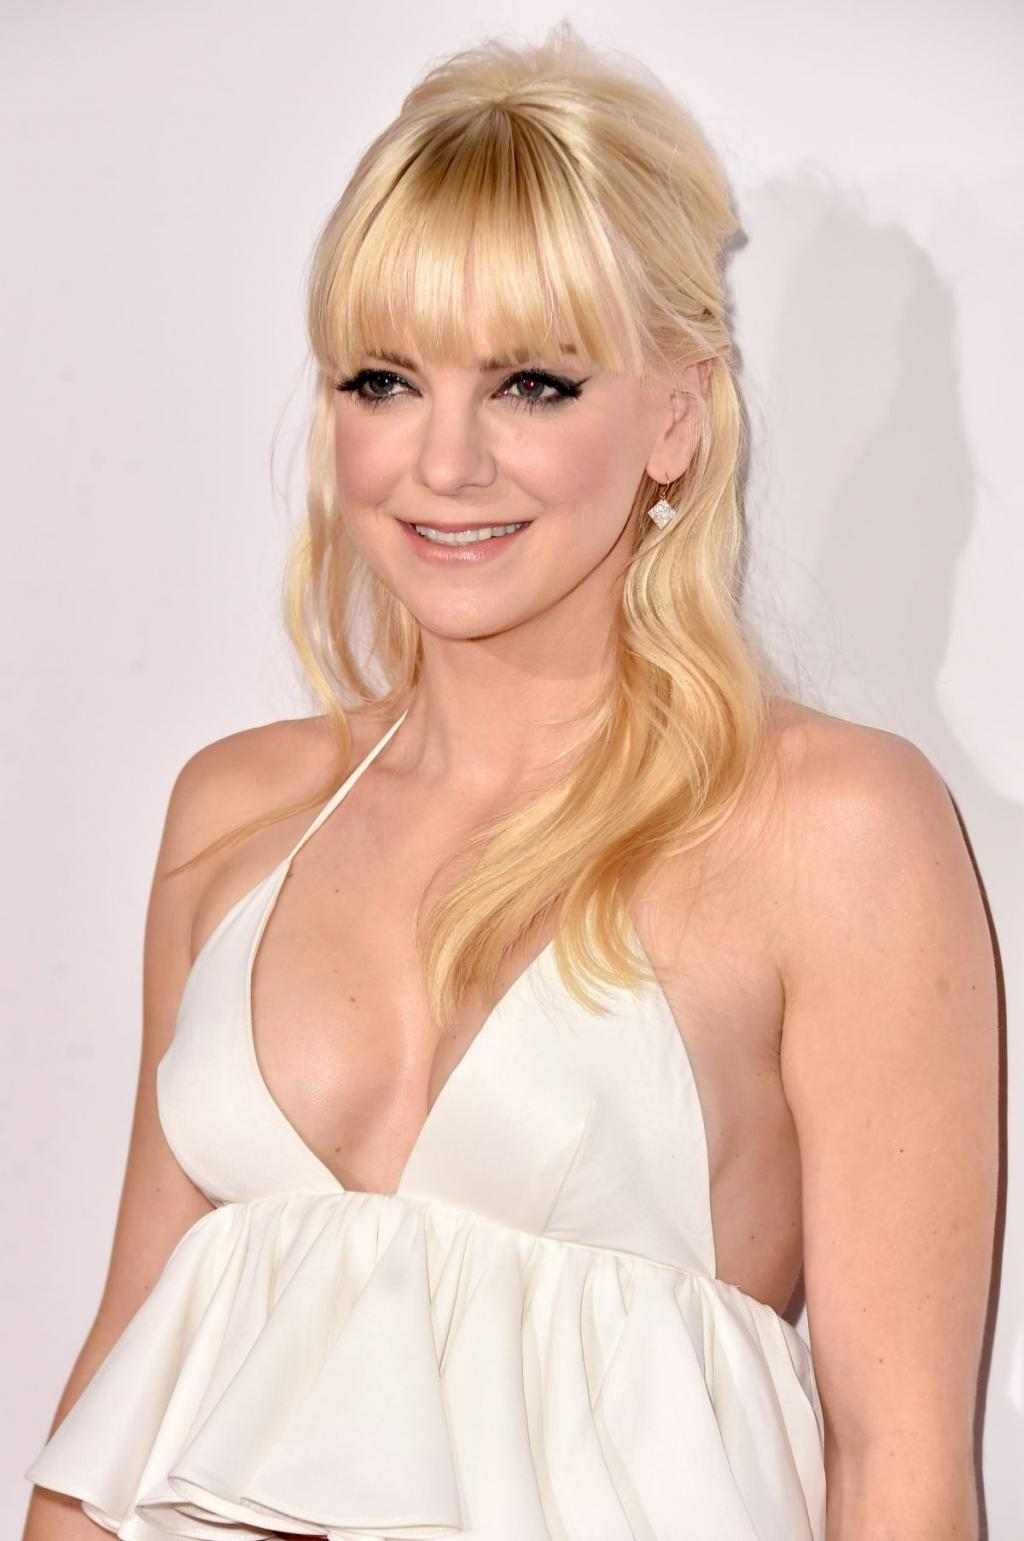 Anna Faris Archives - Page 3 Of 6 - HawtCelebs - HawtCelebs